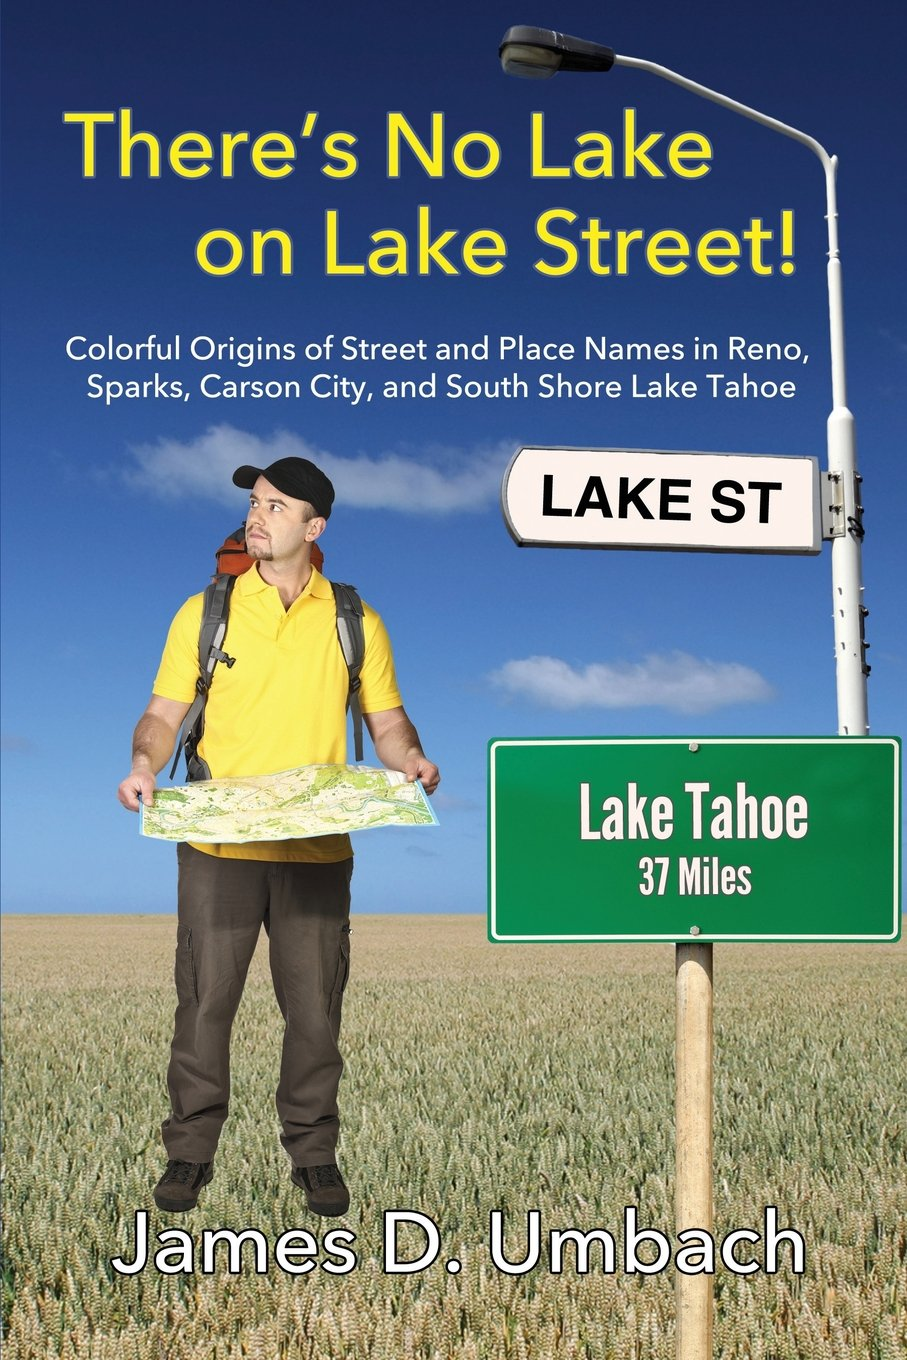 Download There's No Lake on Lake Street! Colorful Origins of Street and Place Names in Reno, Sparks, Carson City, and South Shore Lake Tahoe ebook